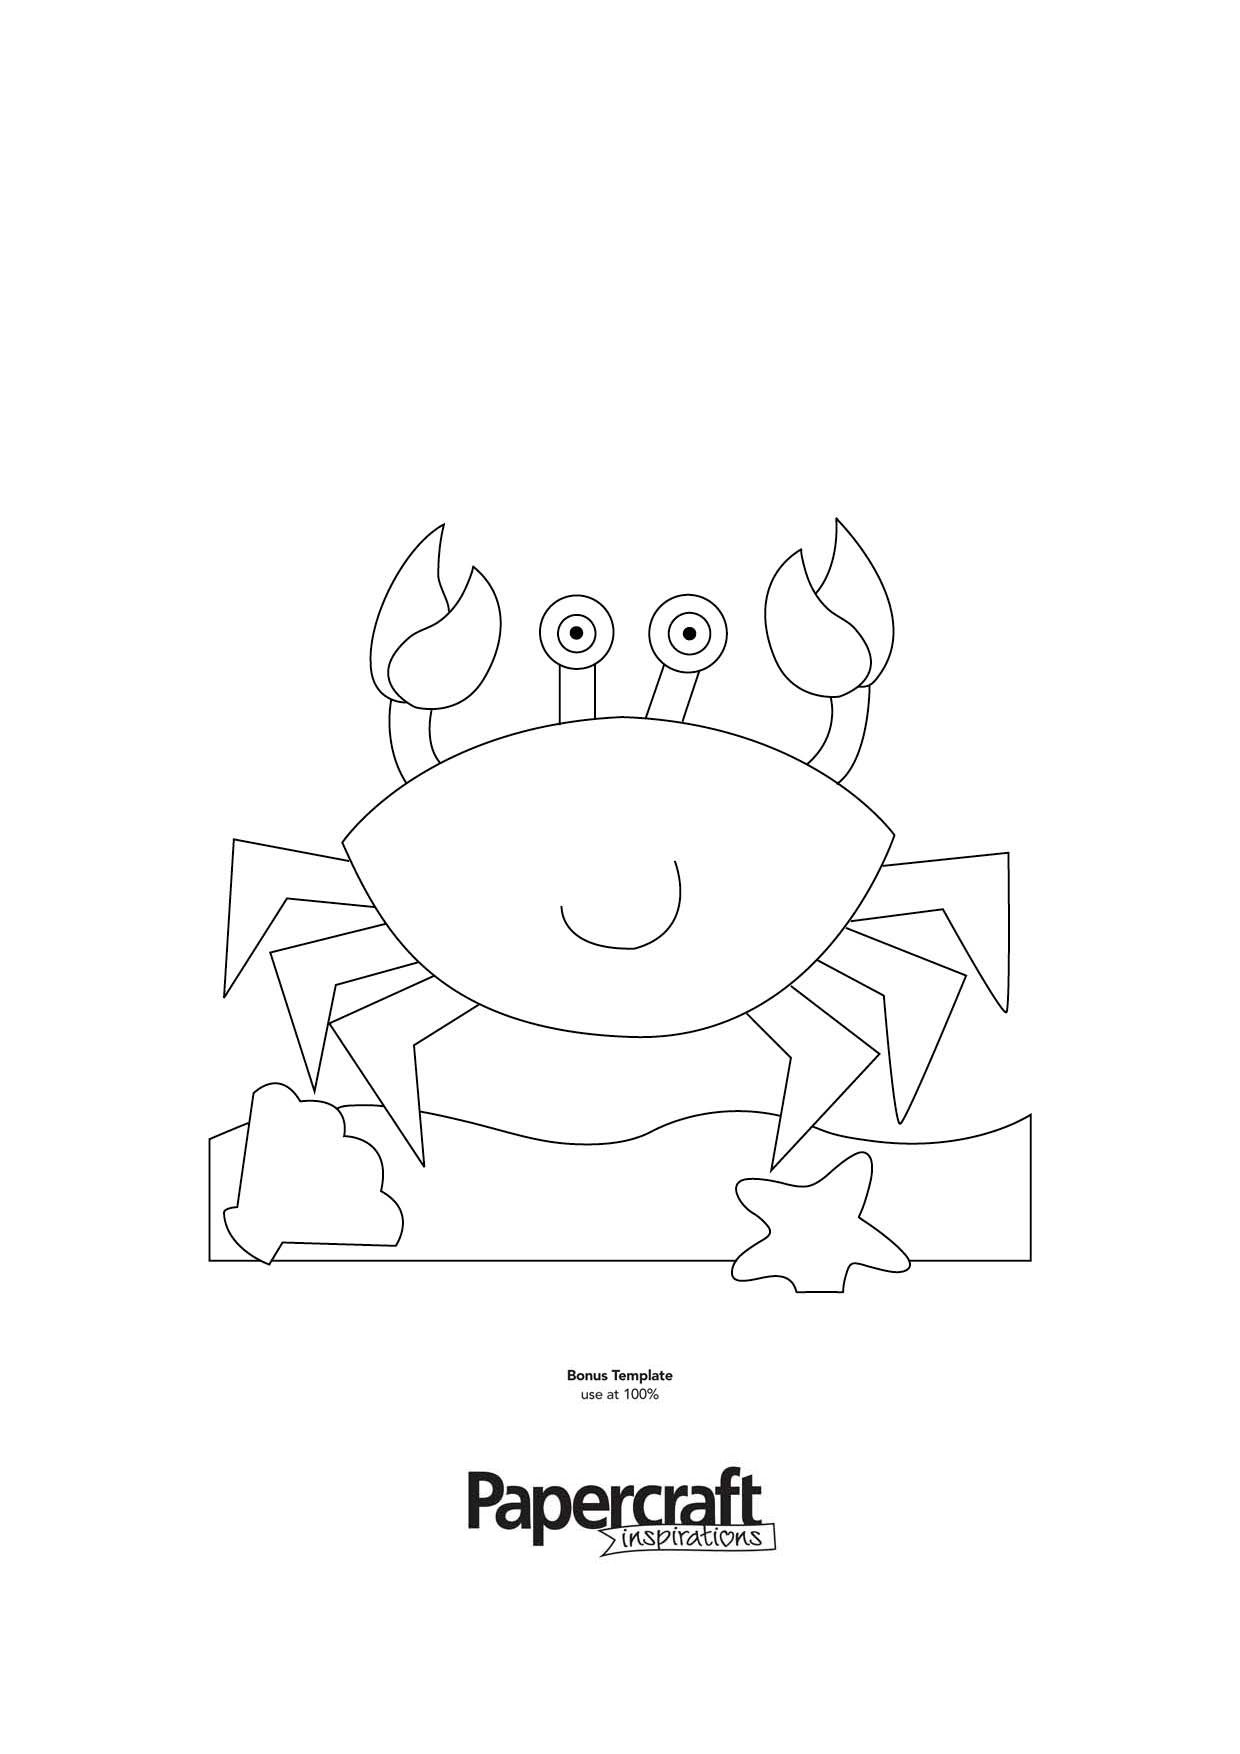 crab template for summer paper craft projects brought to you by